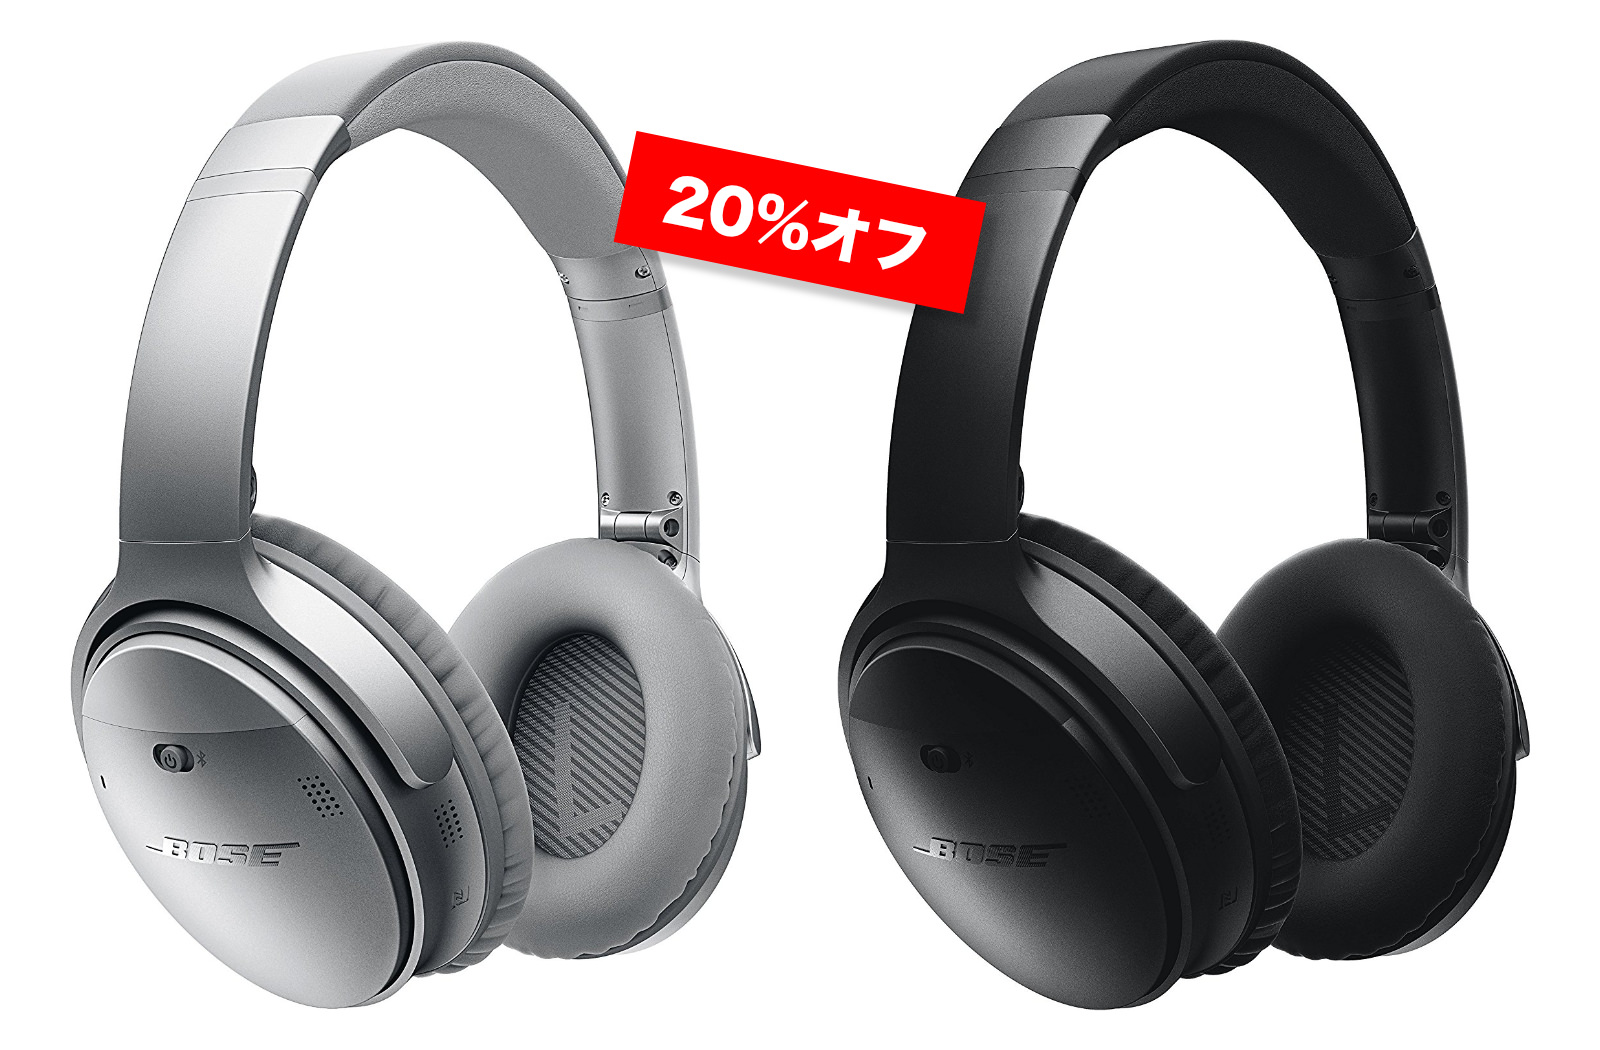 Bose Comfort35 Headphones Sale